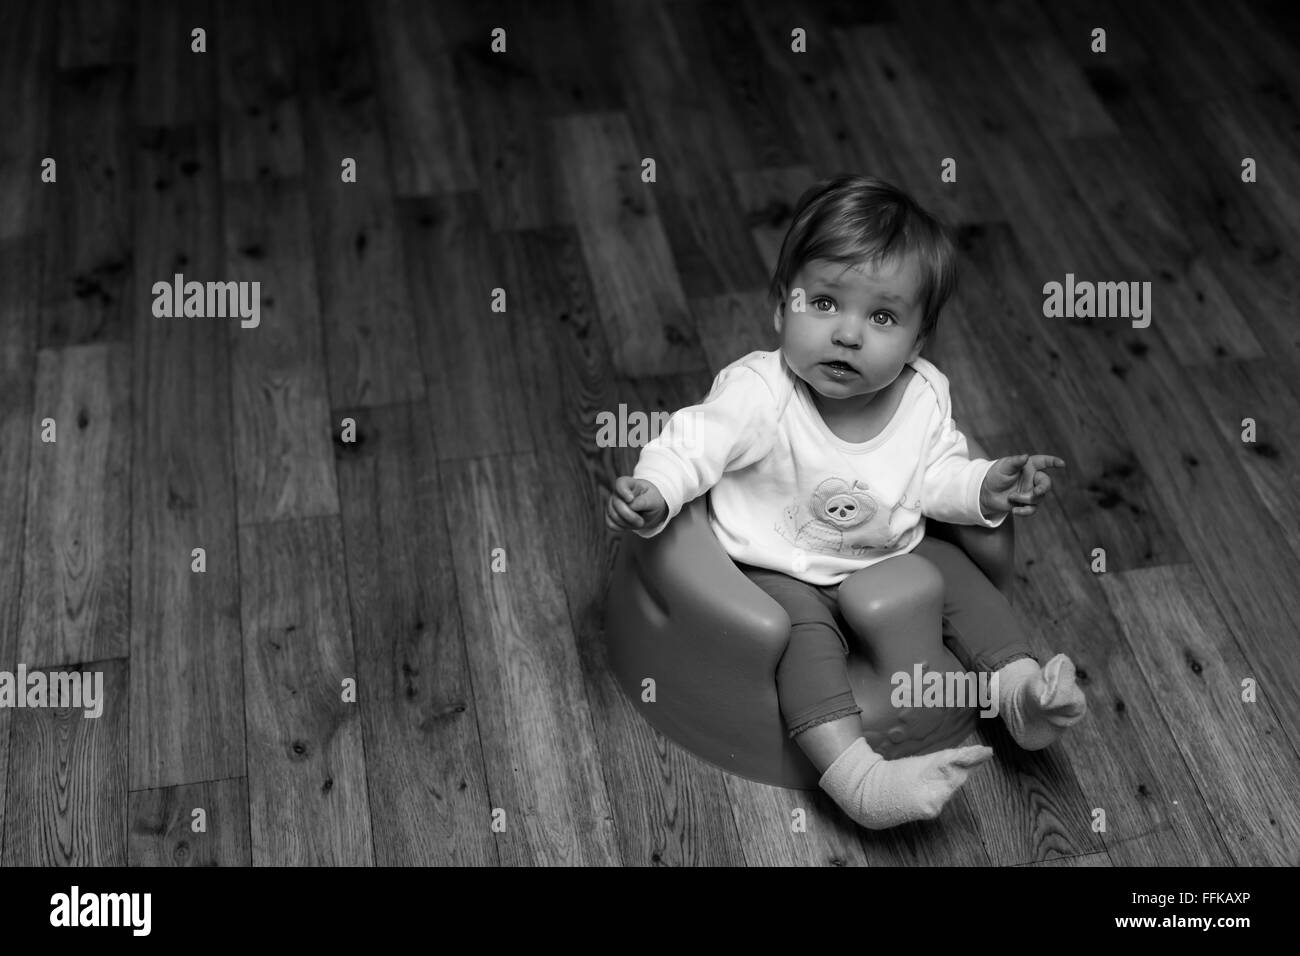 black and white photograph of a beautiful lonely baby sitting in a baby seat on a wooden kitchen floor - Stock Image